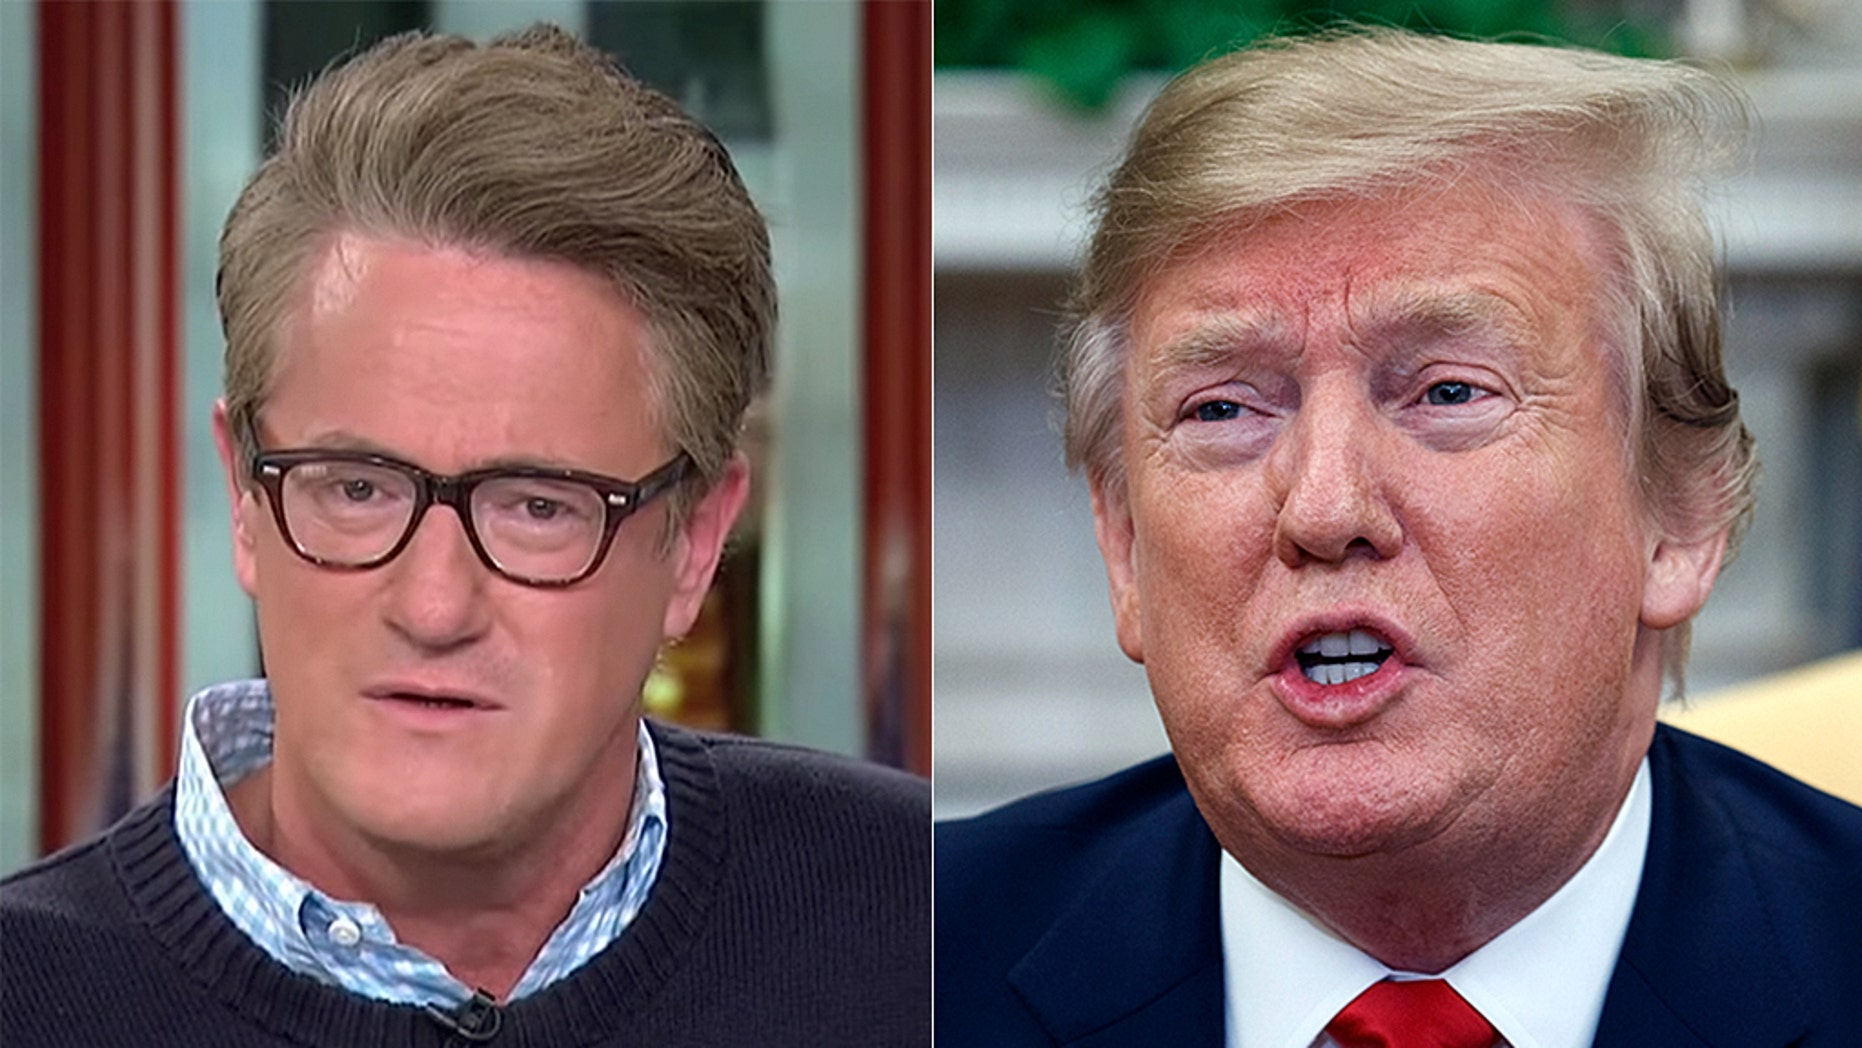 Joe Scarborough says that regardless of Mueller's findings, Trump's vocal support of Russia will isolate voters in the 2020 election